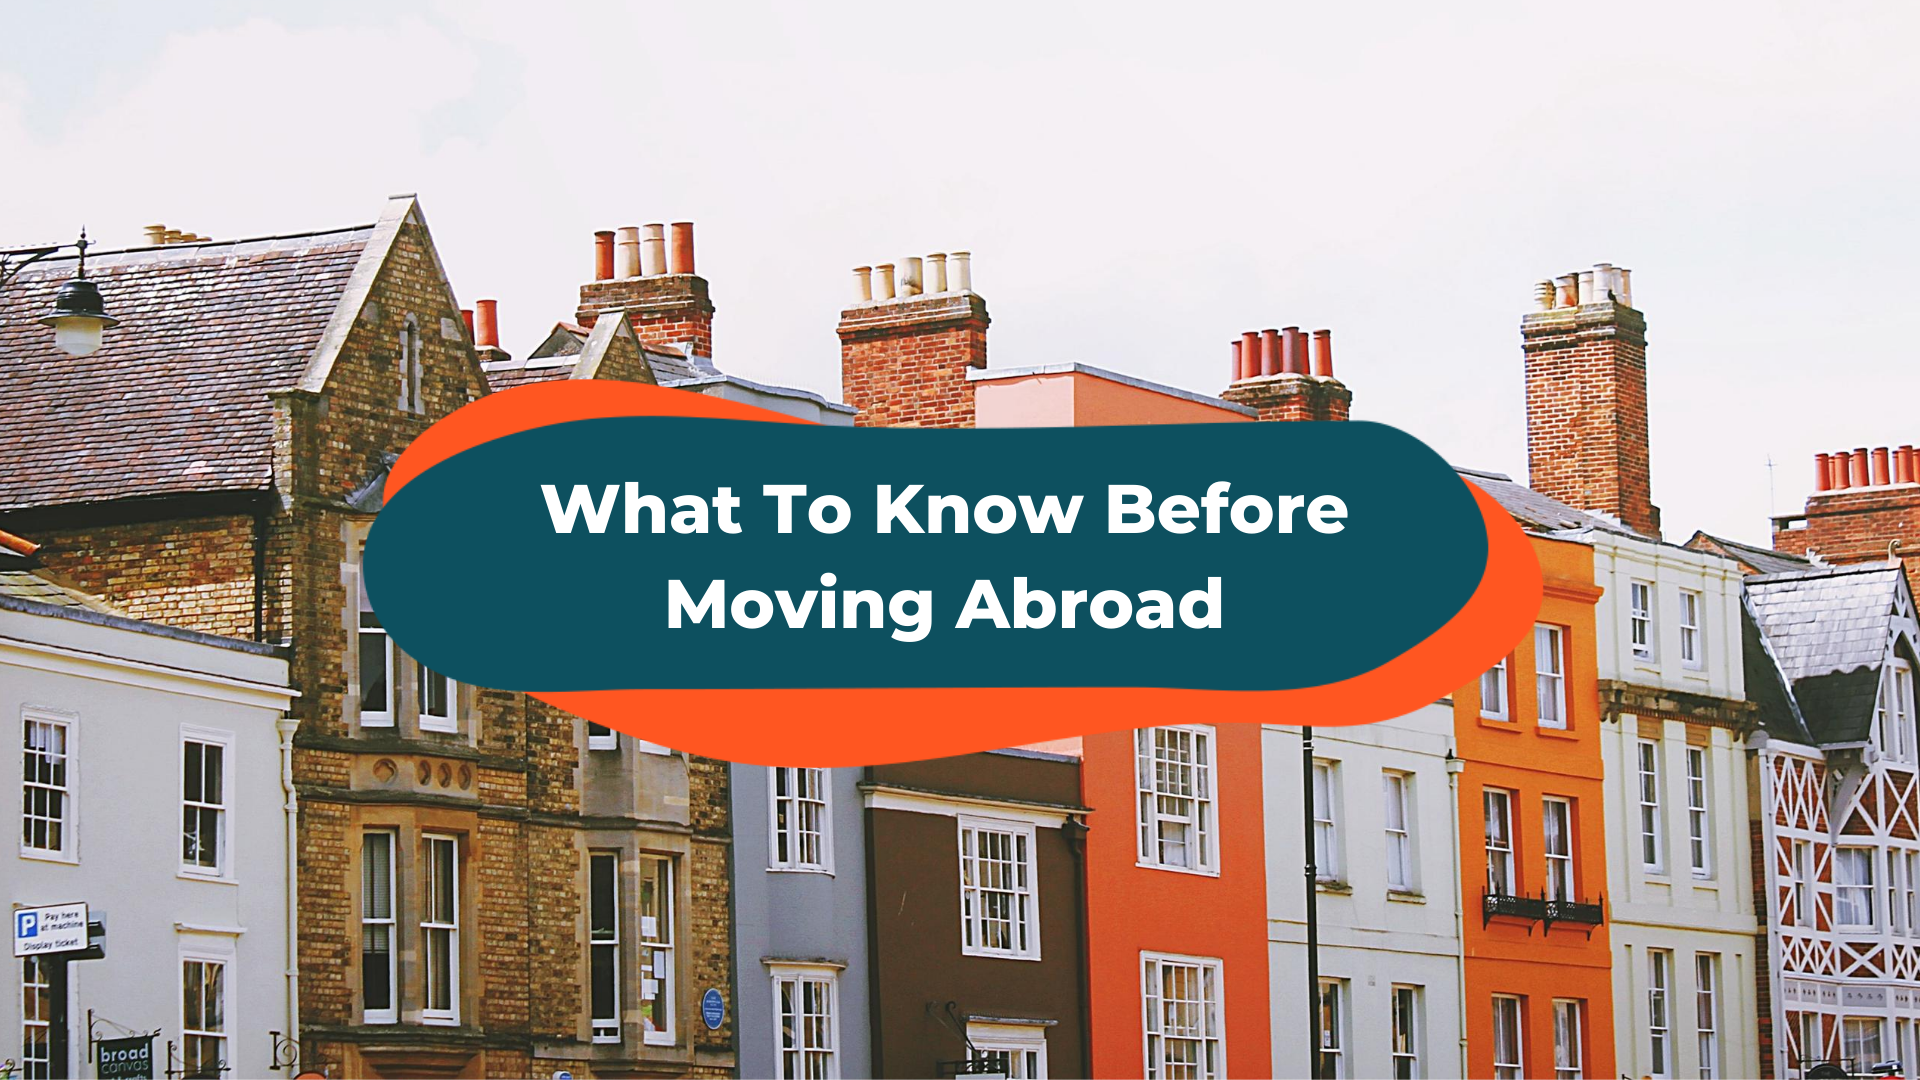 Living Abroad: 5 Things to Know Before Moving Abroad to Your Favorite Travel Destination